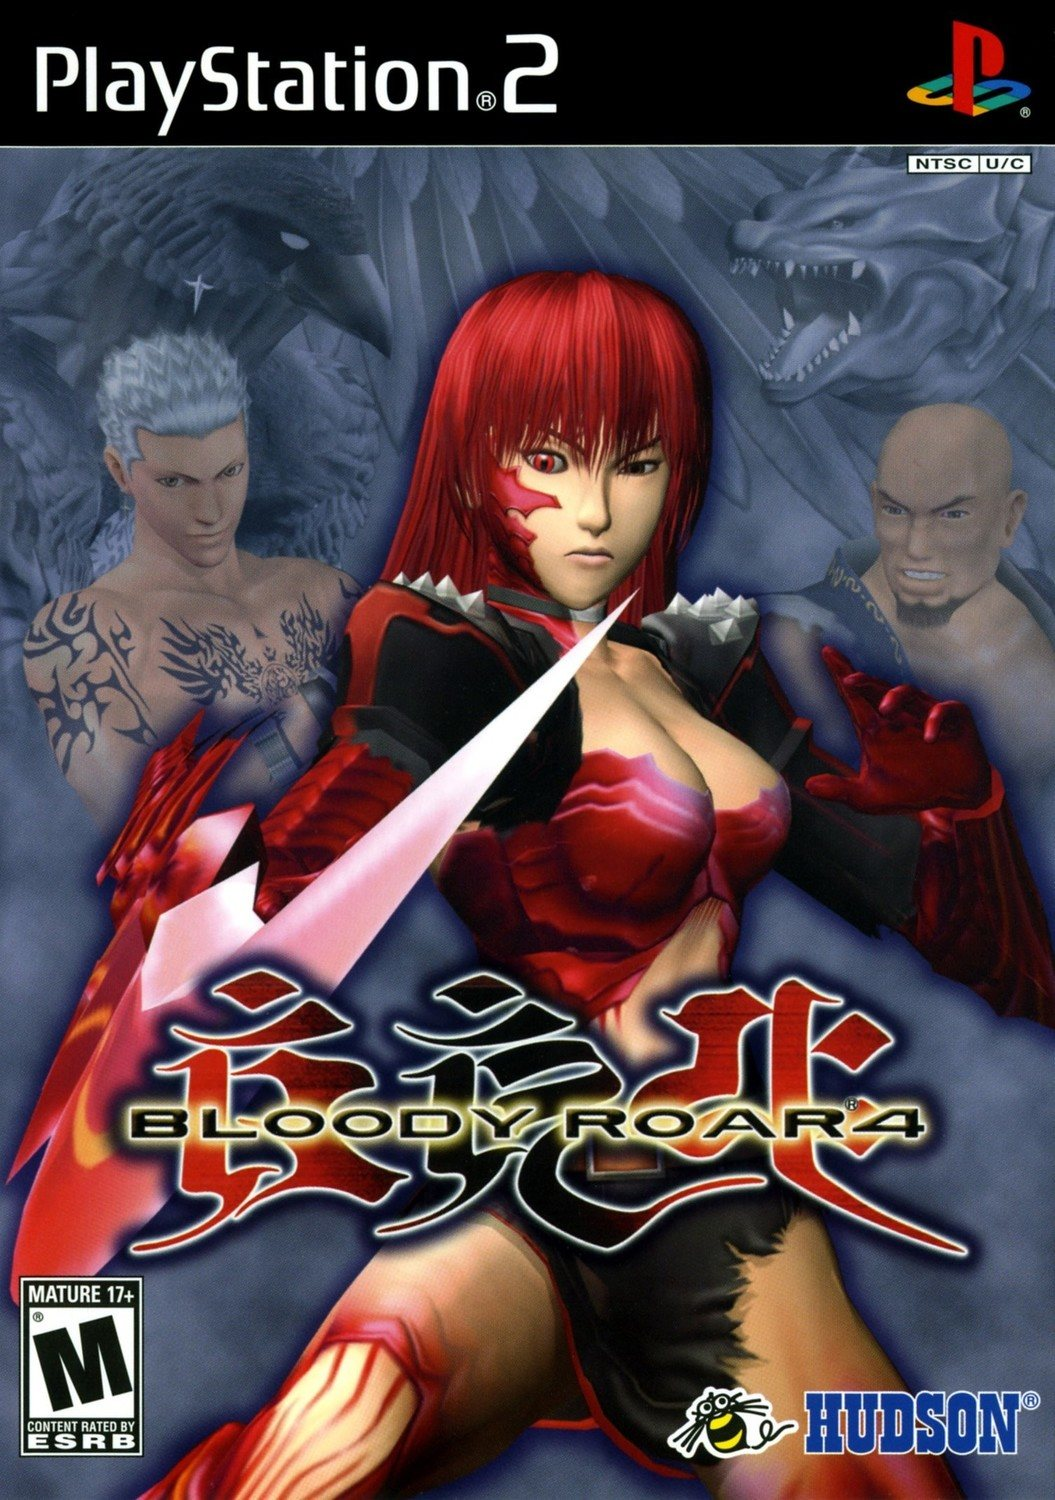 Bloody roar xxx erotic photo